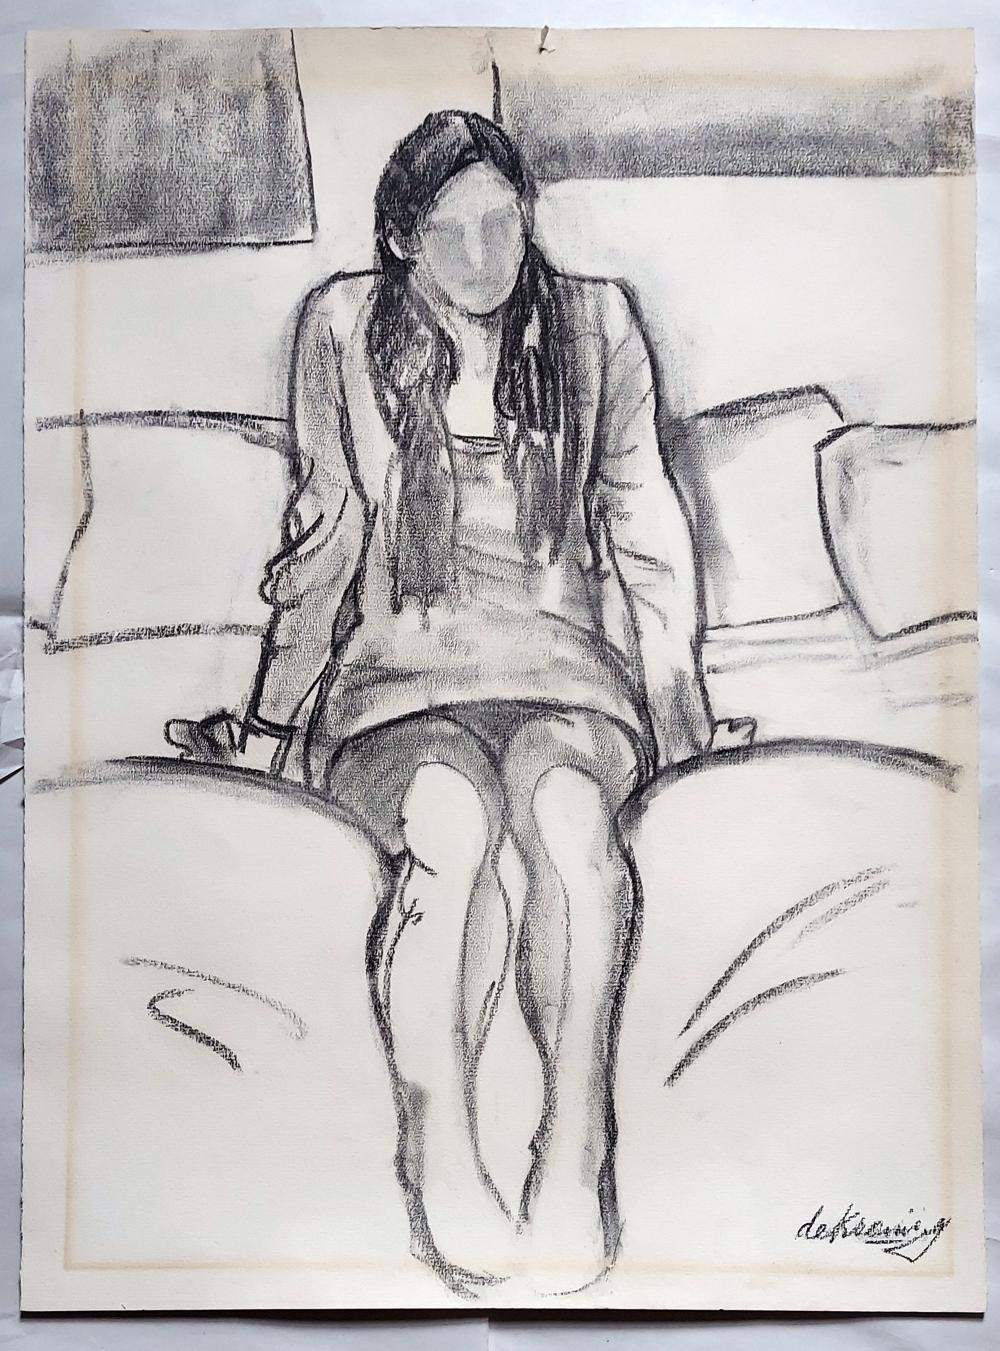 Willem de Kooning: Charcoal Drawing on Heavy Laid Paper, 1988